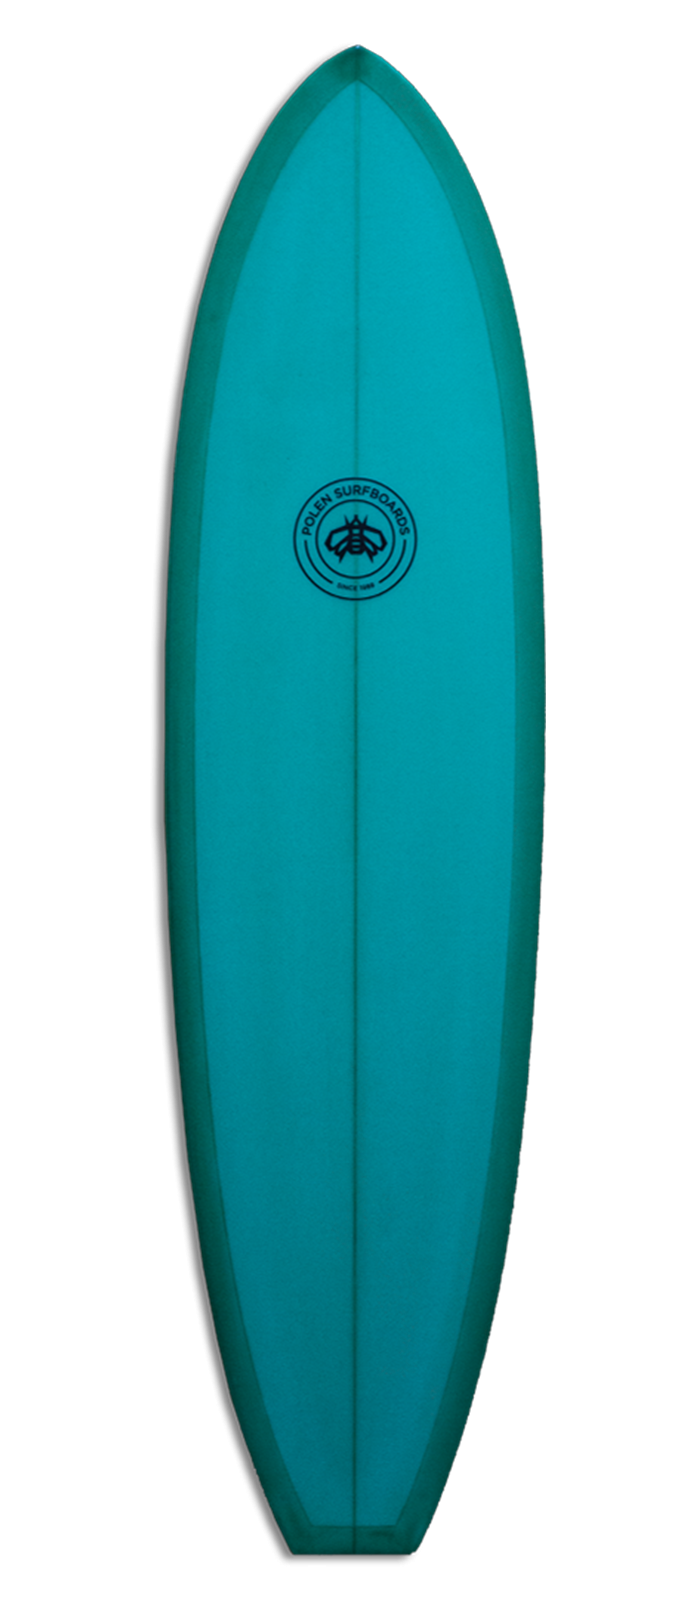 REBEL GRACE surfboard model deck